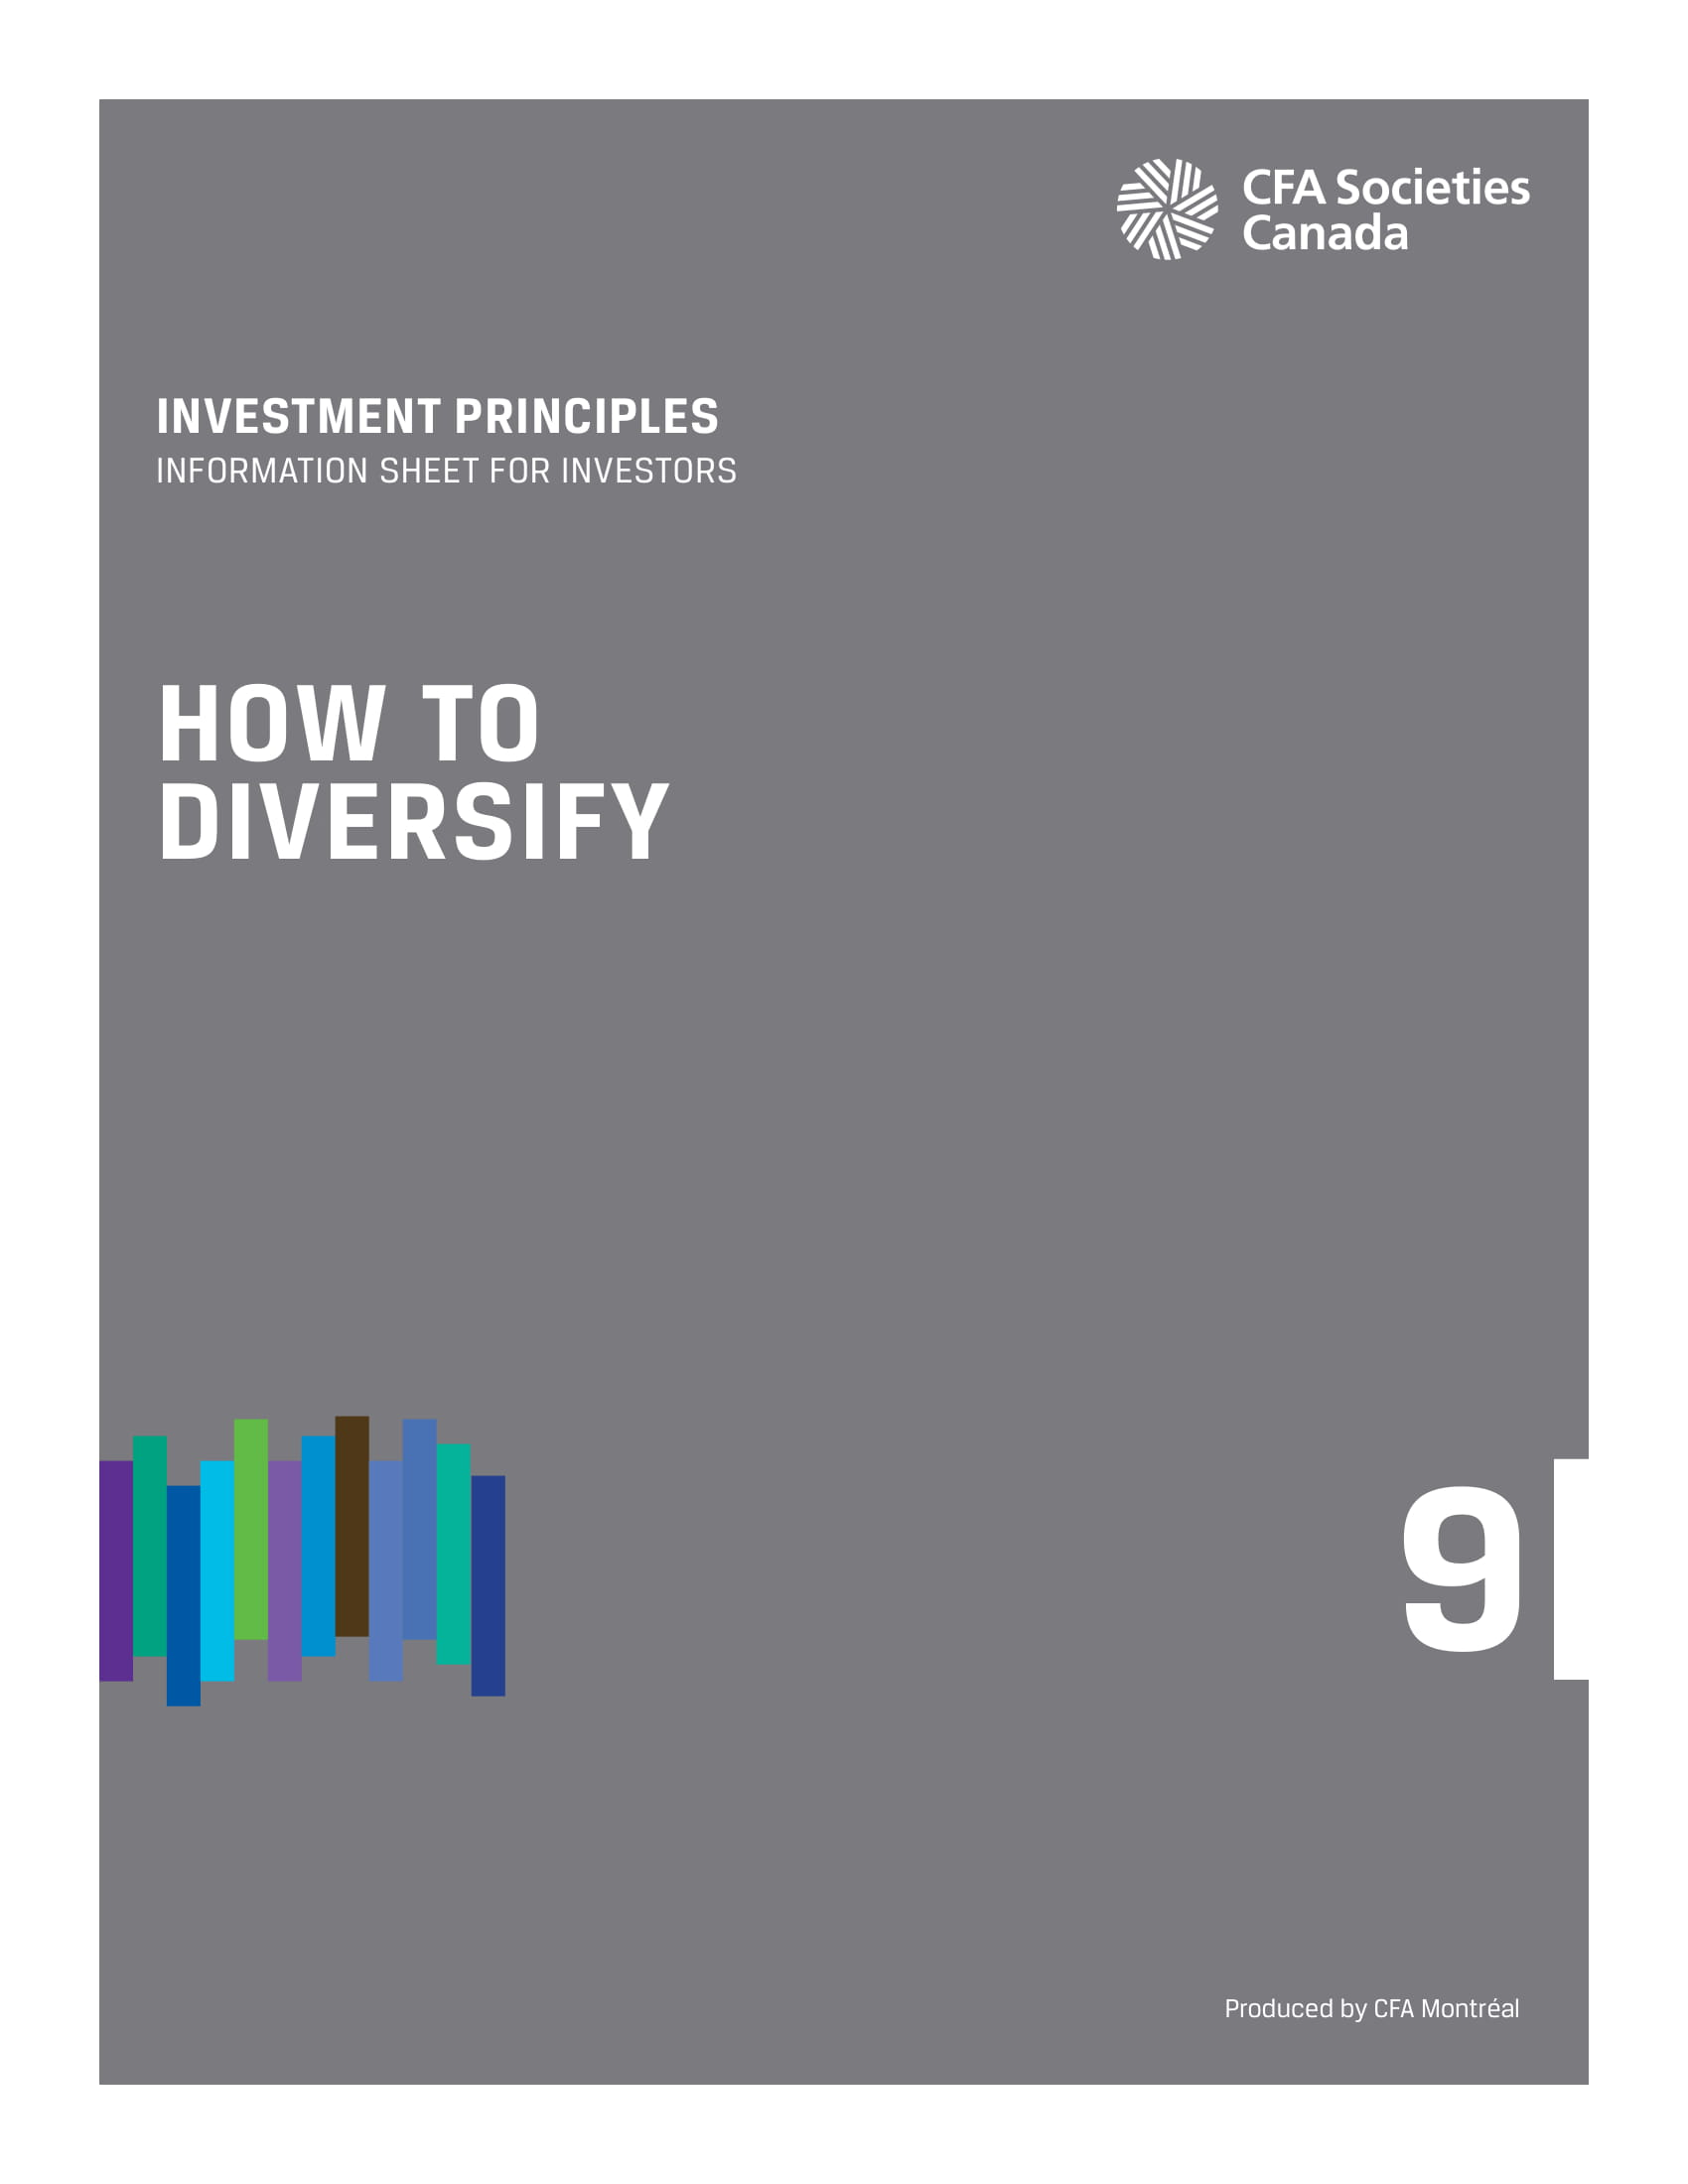 9. Investors - How to Diversify_p1-1-1.jpg